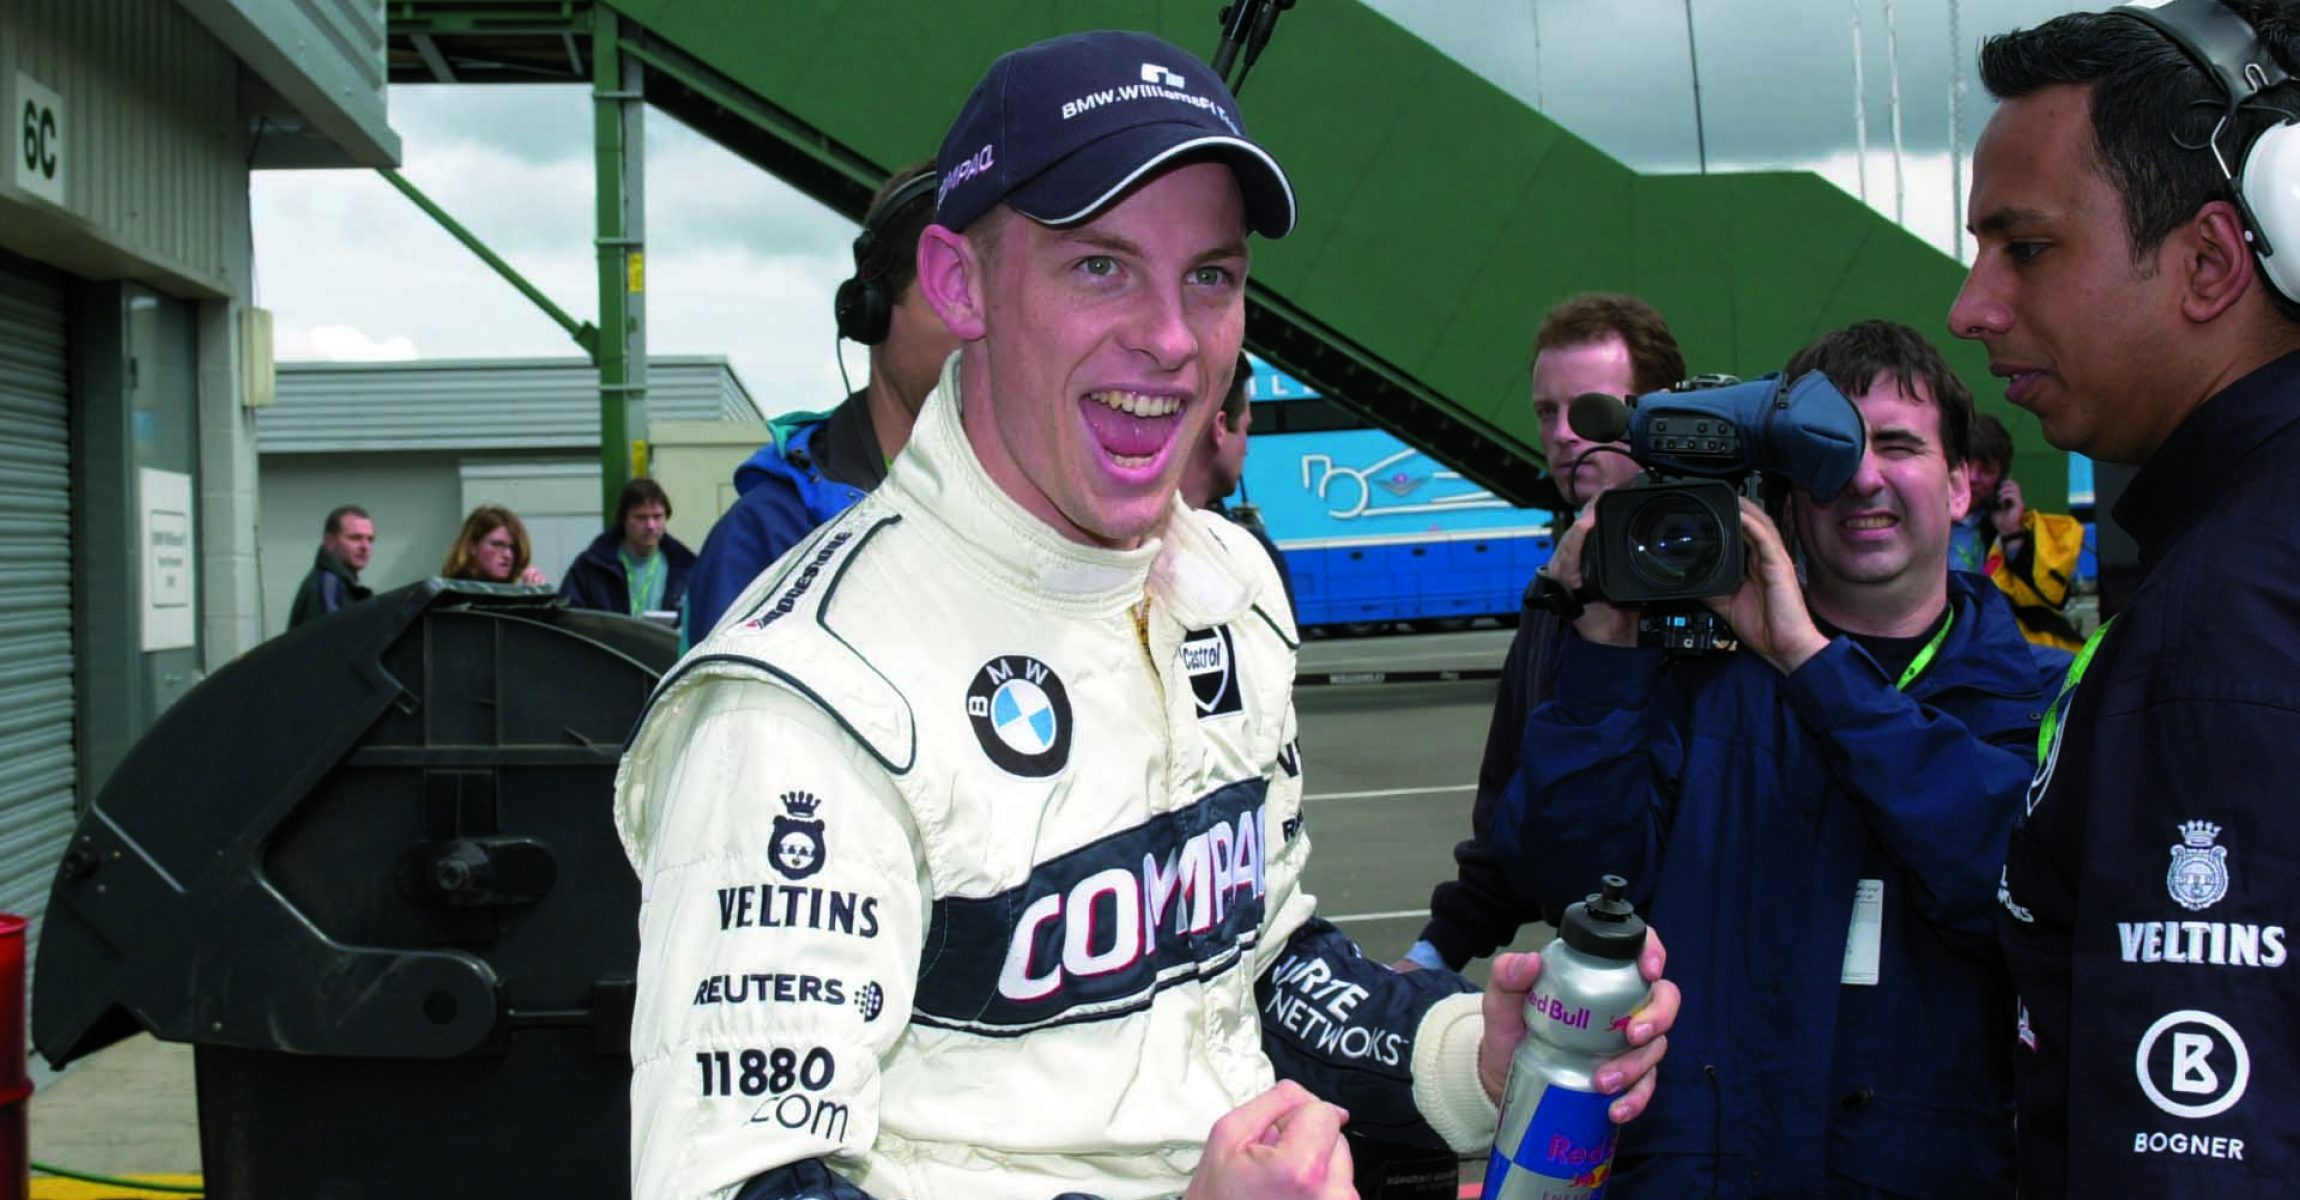 Saturday, April 22, 2000  British Grand Prix  Silverstone, England, 2000  Jenson Button WilliamsF1 BMW FW22 after he got sith place © Formula One Pictures tele (44) 01992 787800 Picture by John Townsend